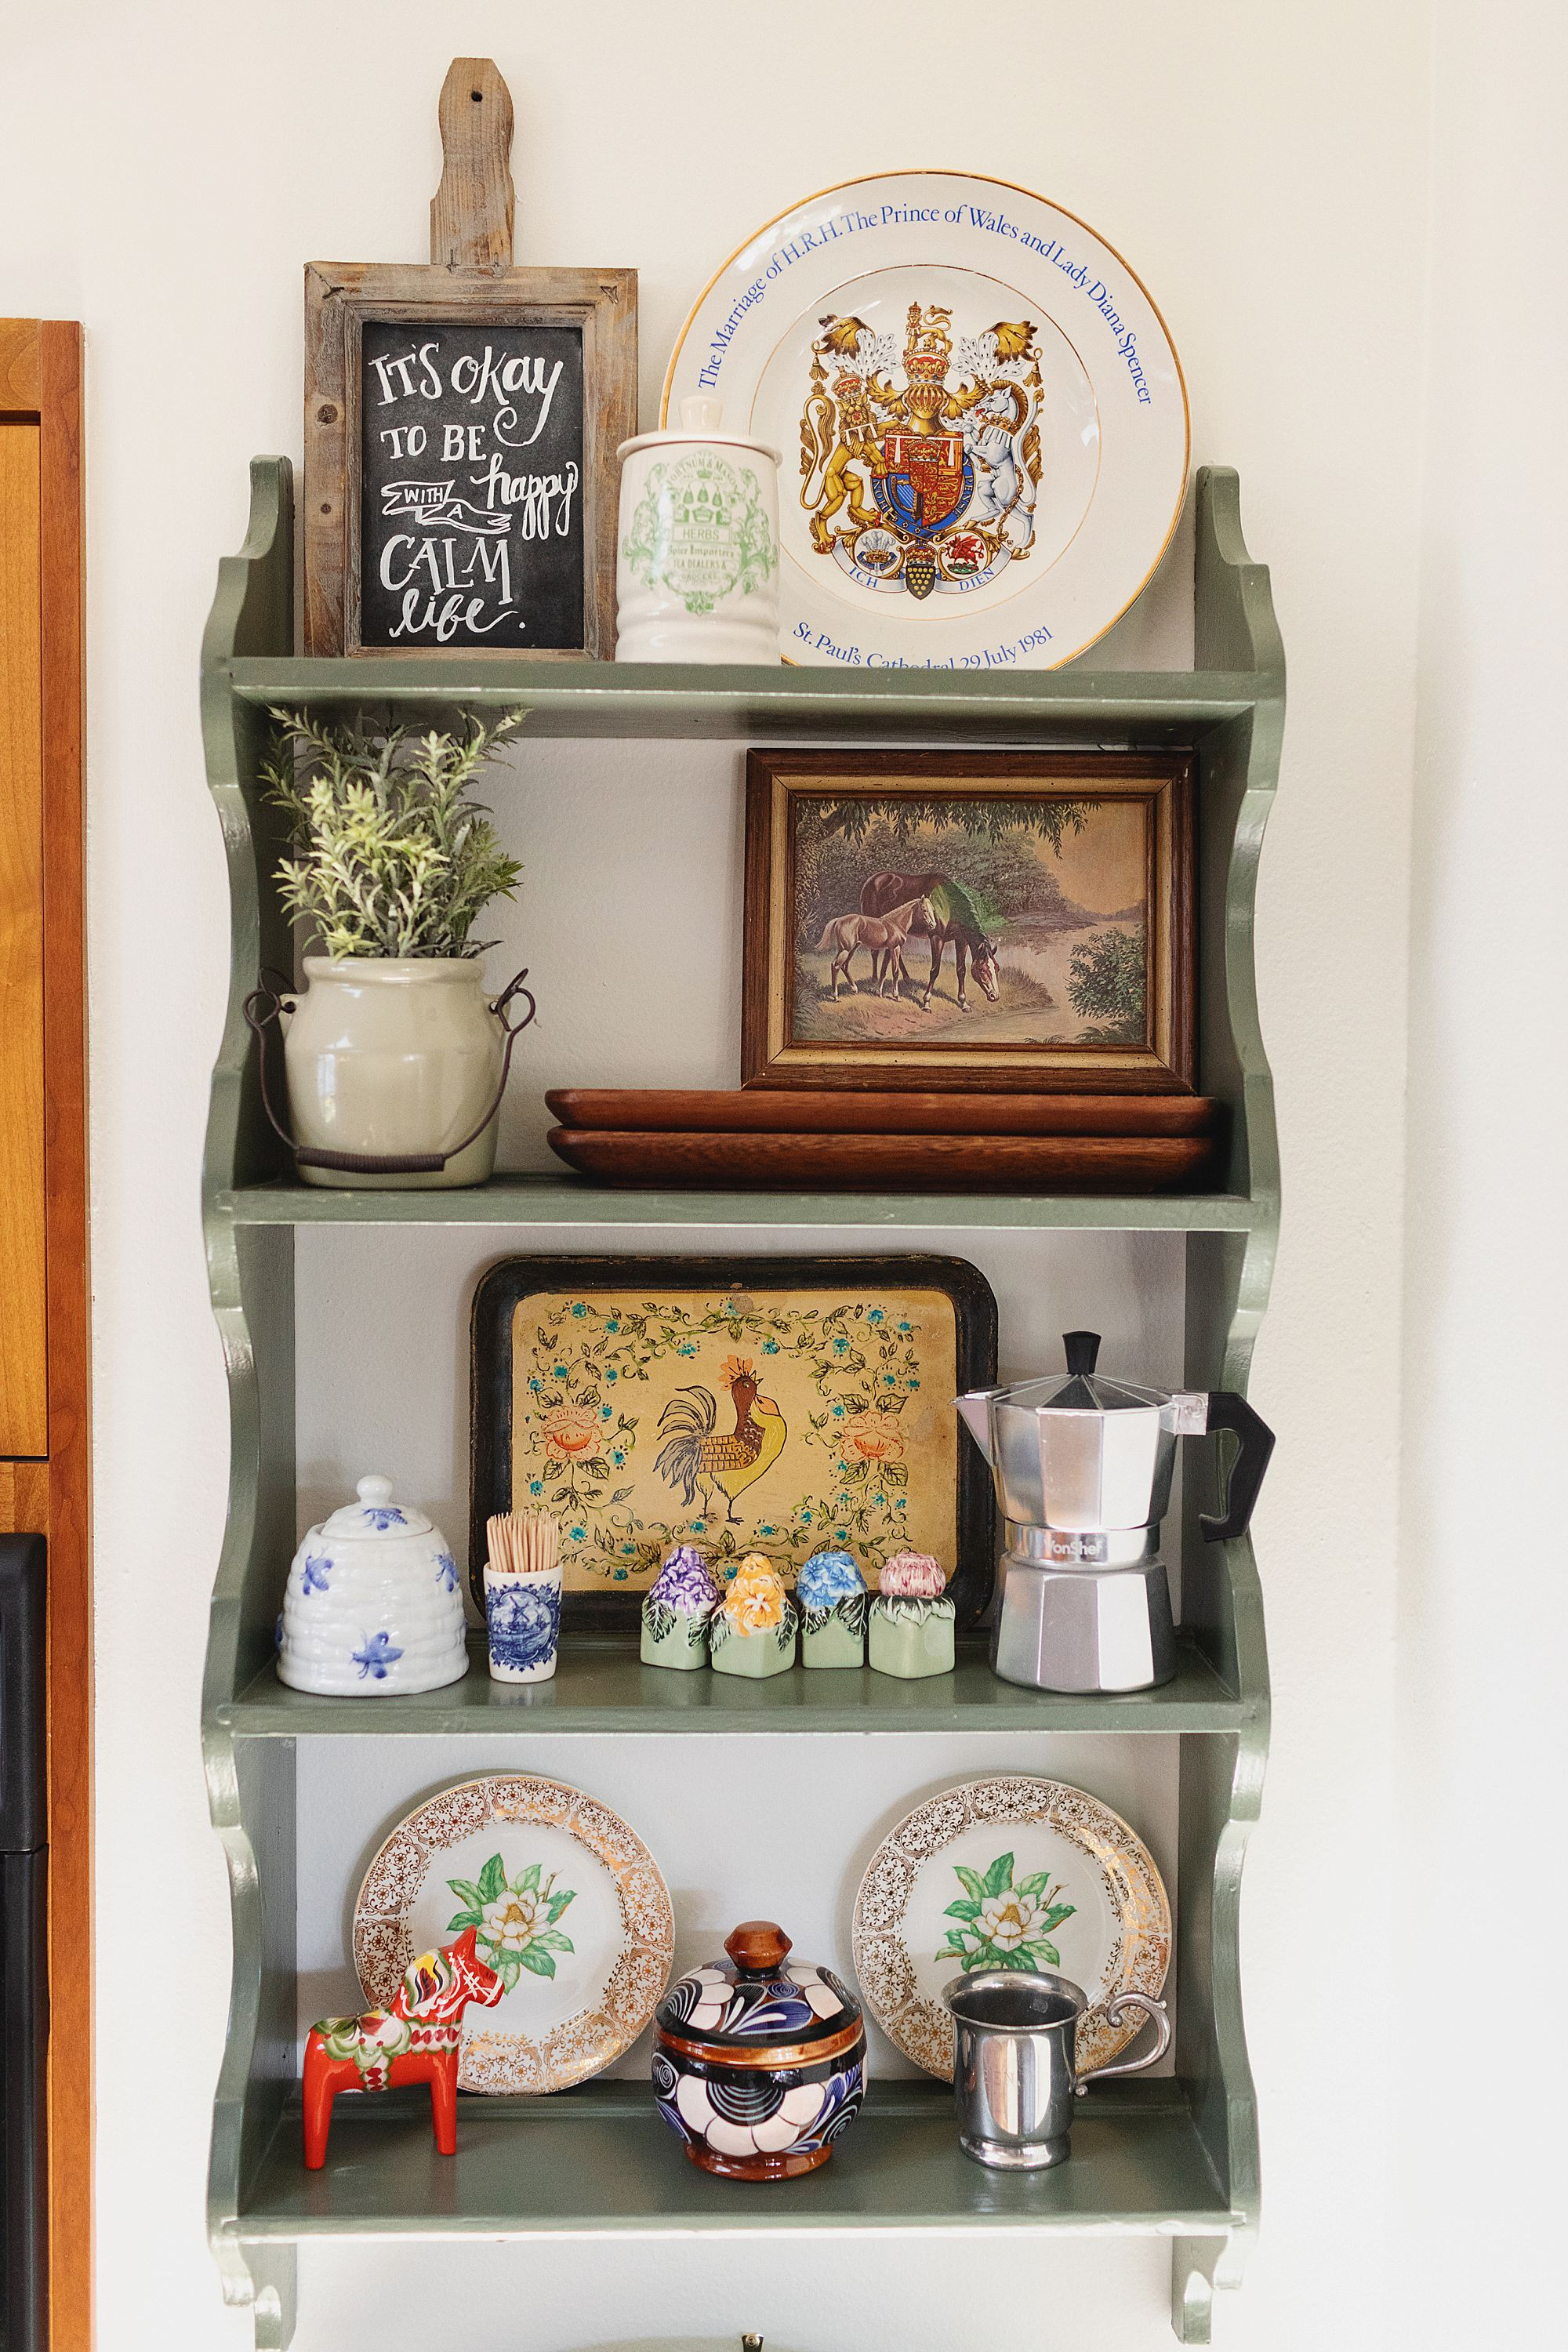 kitchen shelf travel souvenirs